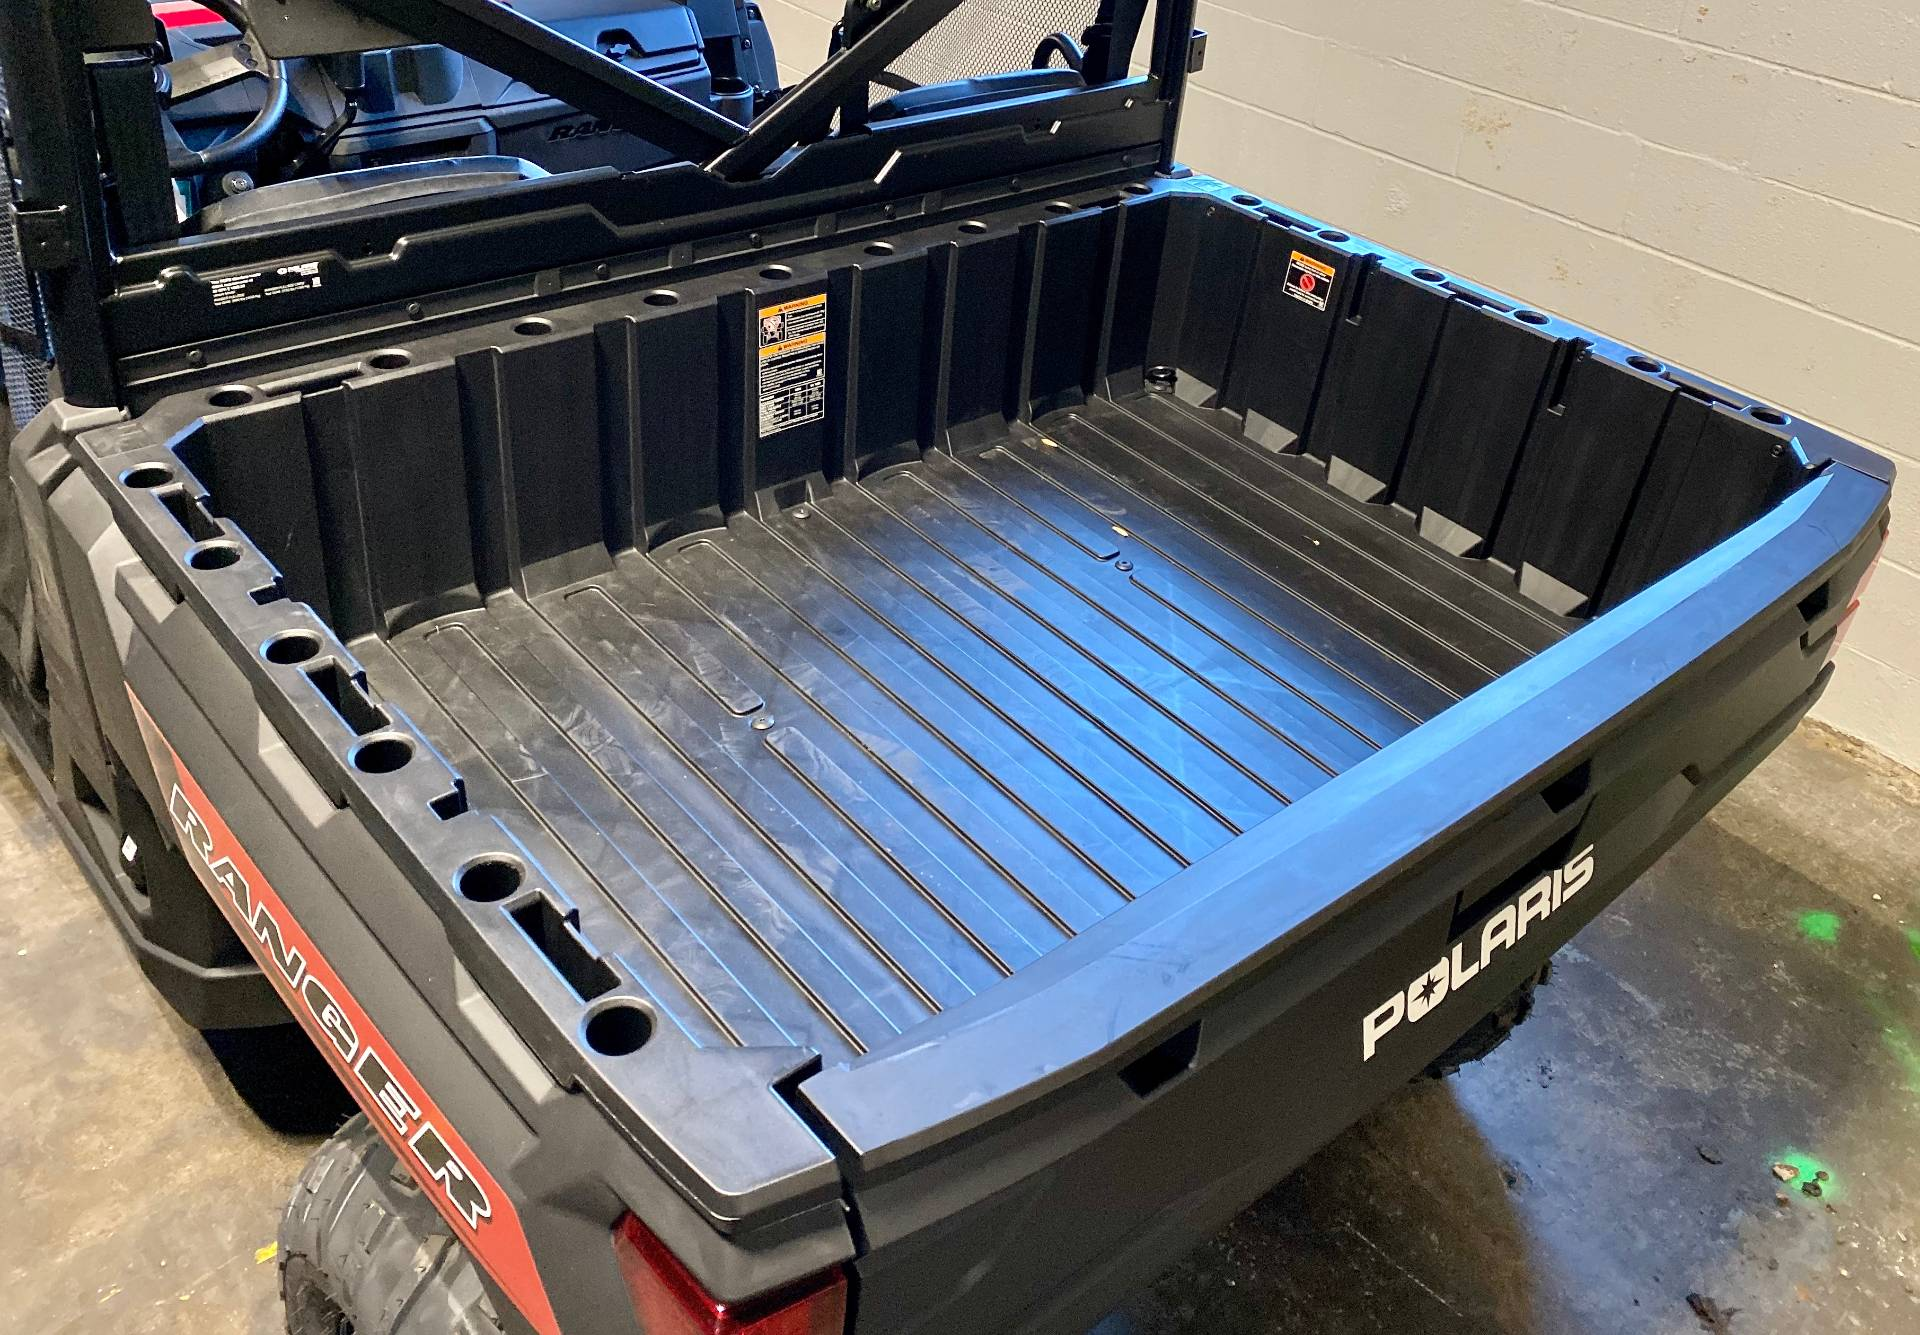 2020 Polaris Ranger 1000 in Statesville, North Carolina - Photo 6